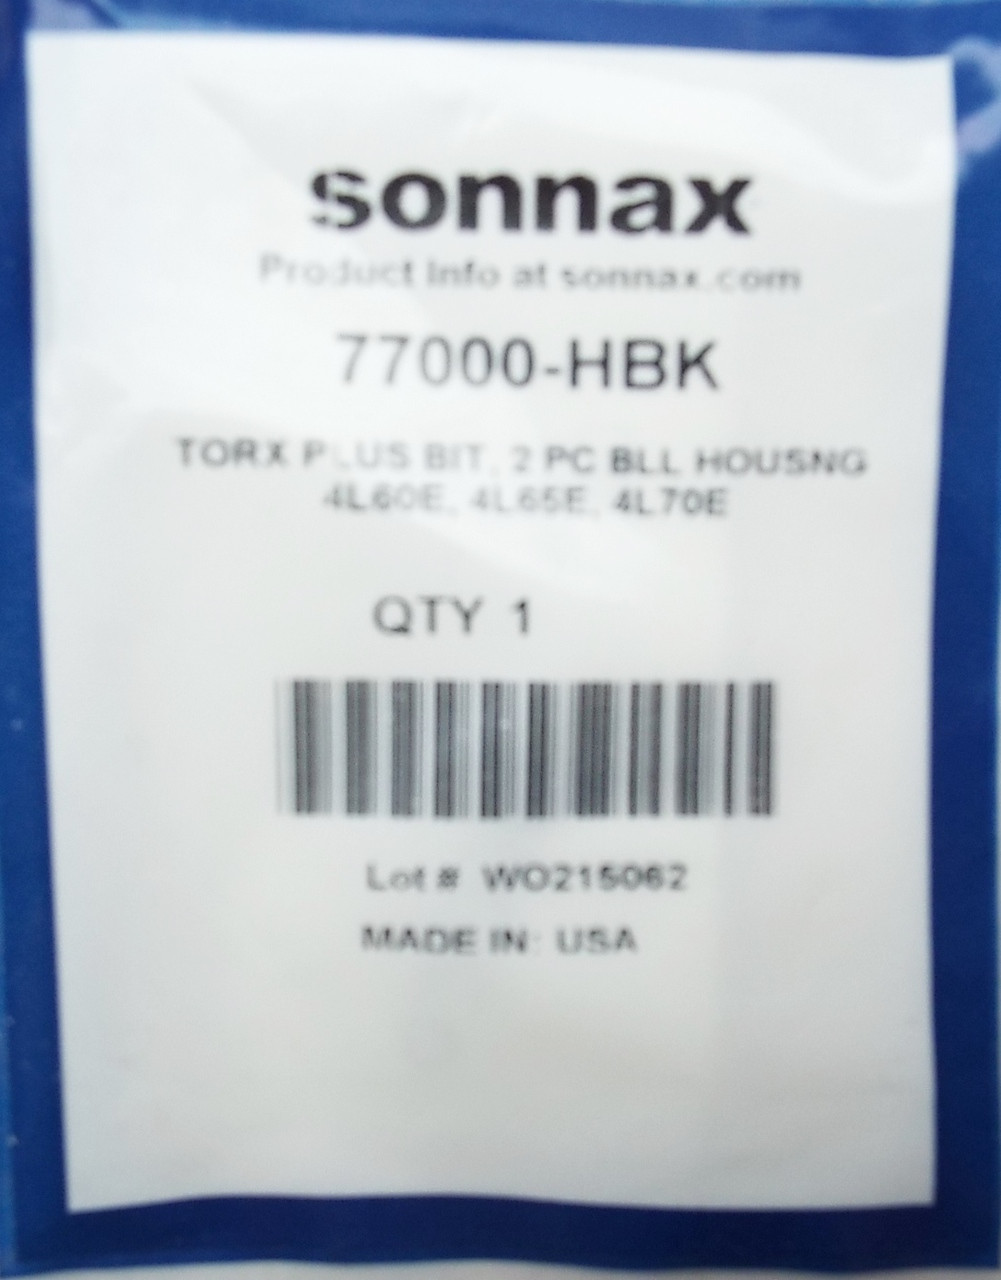 Torx Plus Bit by Sonnax | TP-50+ Bell Housing Bolt Tool